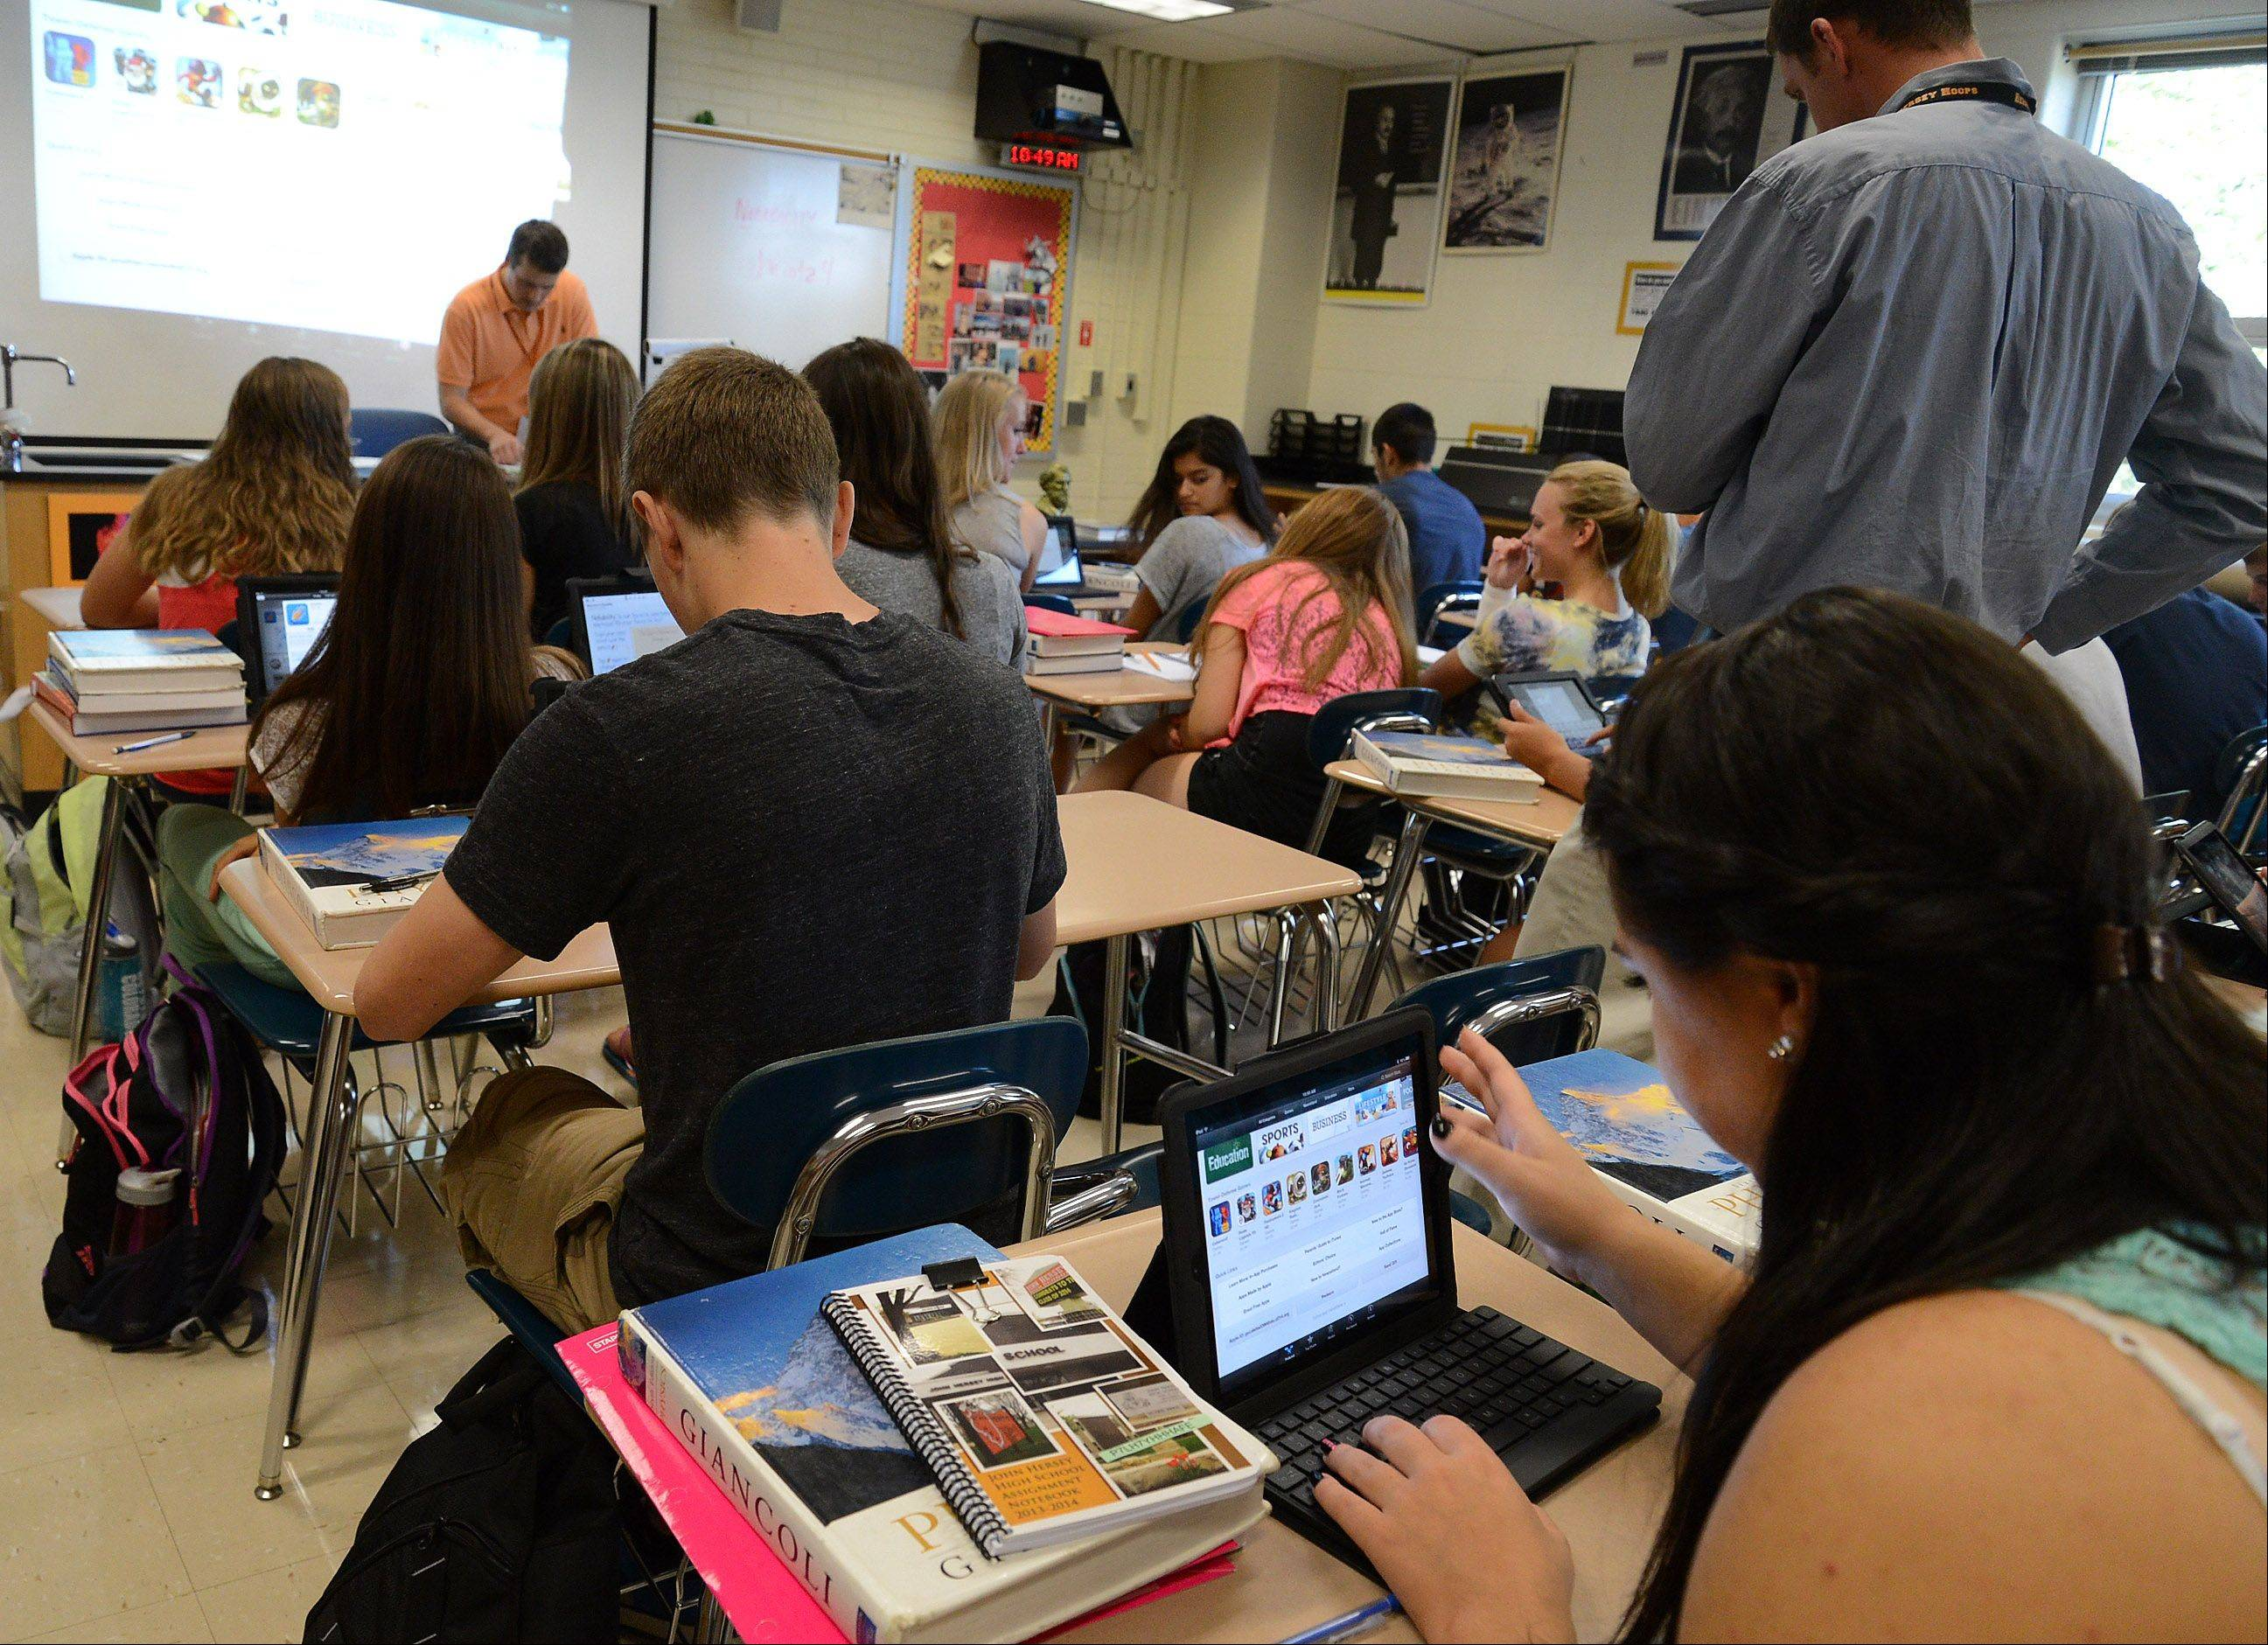 Honors physics teacher Jon Heintzelman's class makes use of iPads on the first day of classes at Hersey High School.